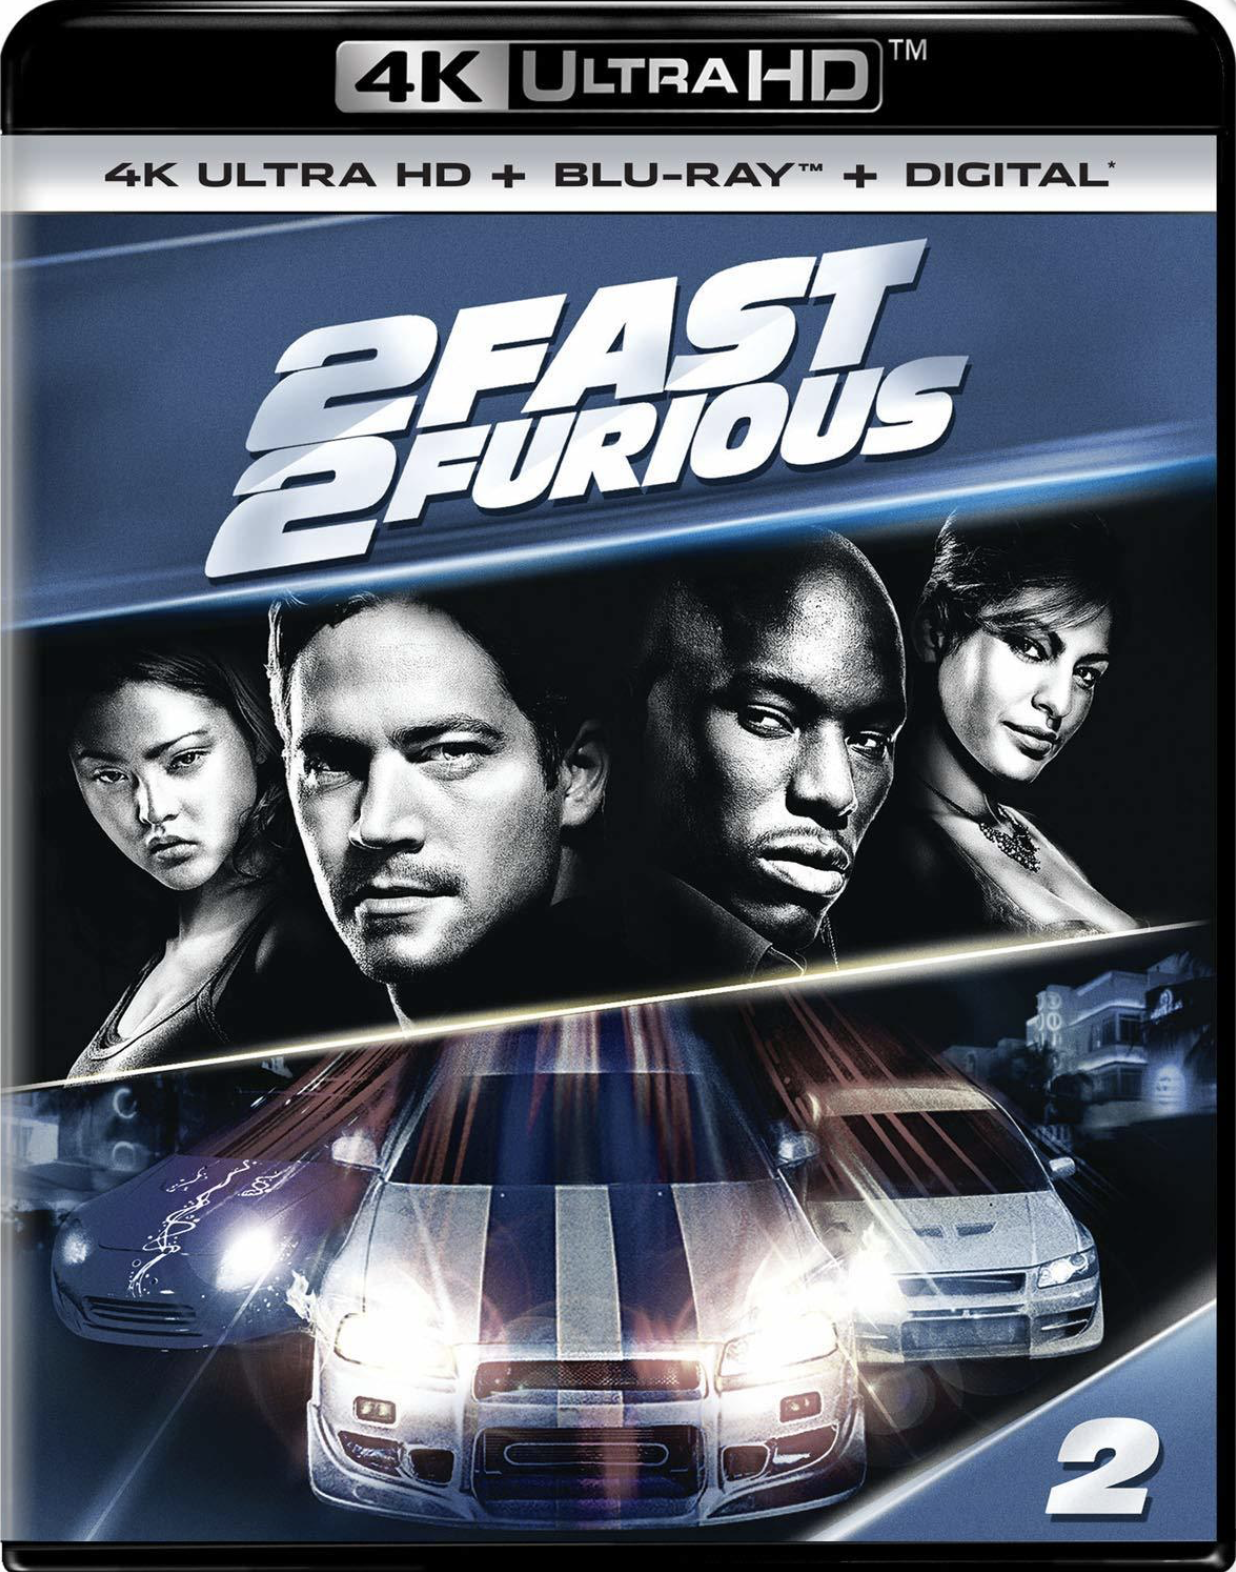 2 Fast 2 Furious/Home media